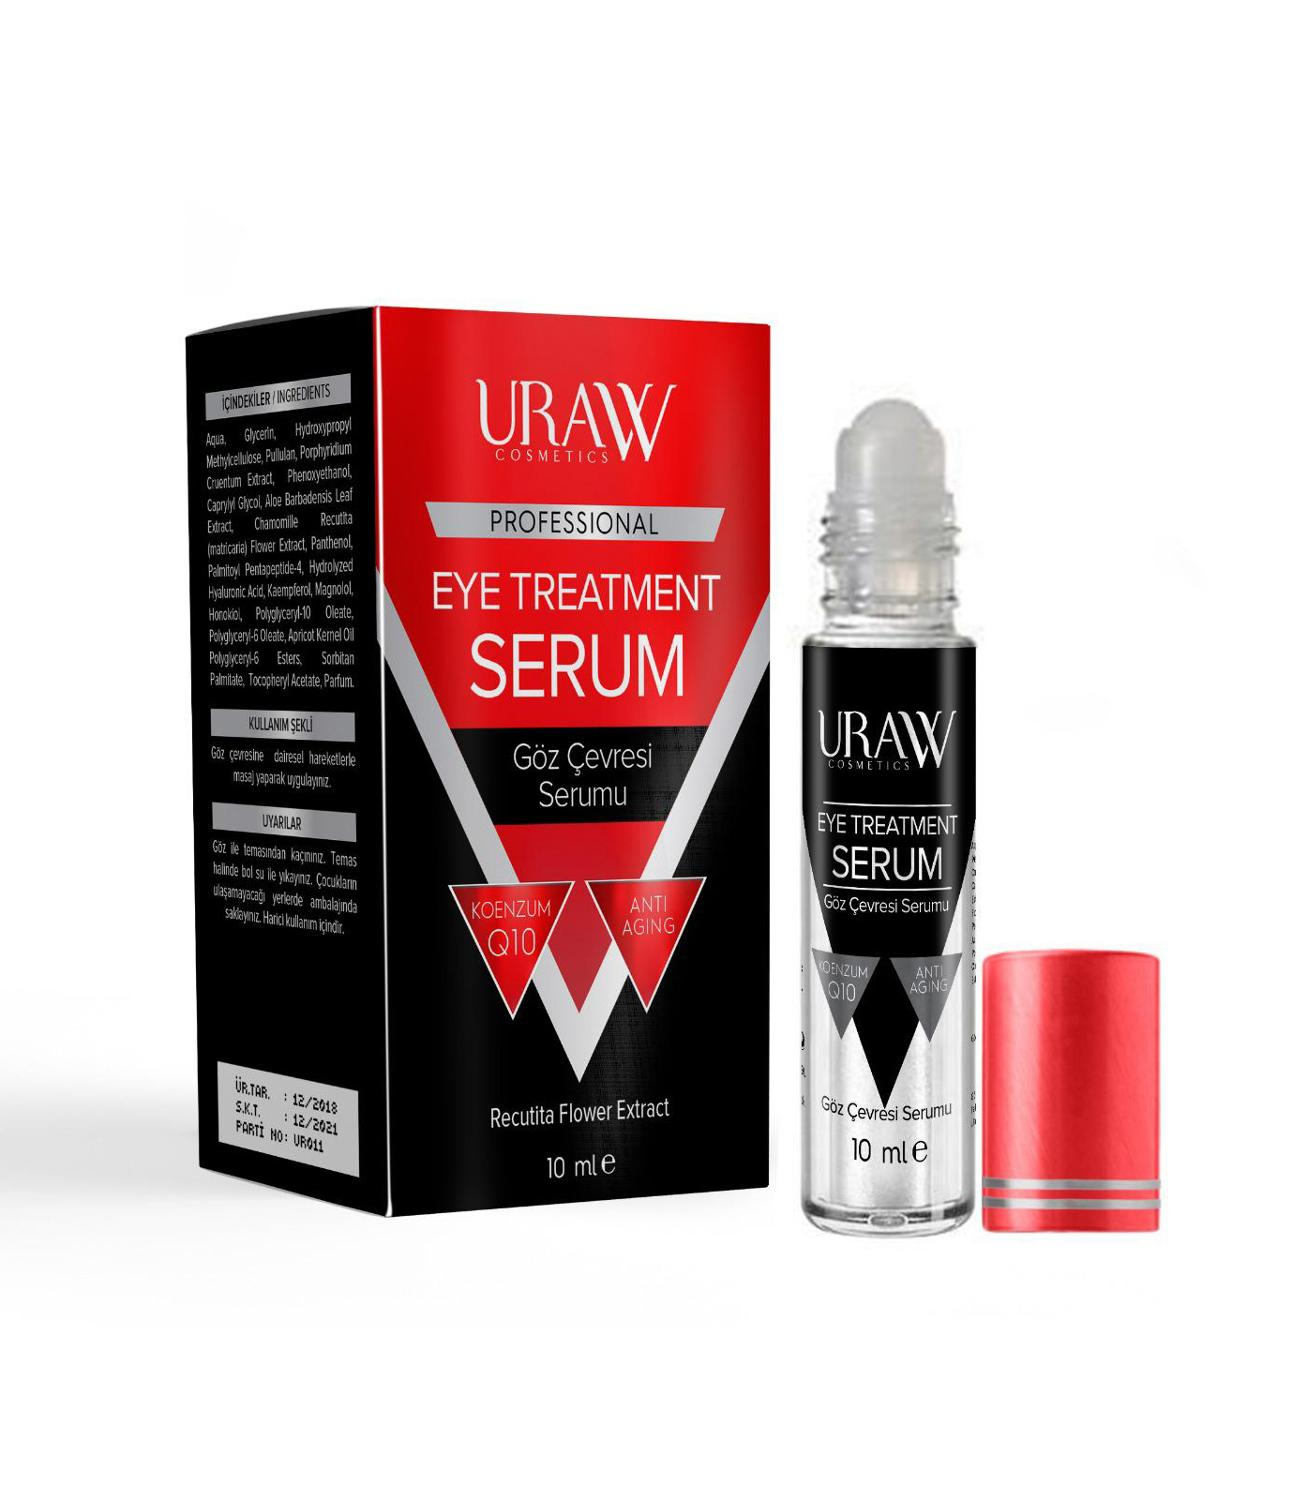 URAW EYE ENVIRONMENT SERUM Helps Reduce Fine Lines And Increase Skin Elasticity